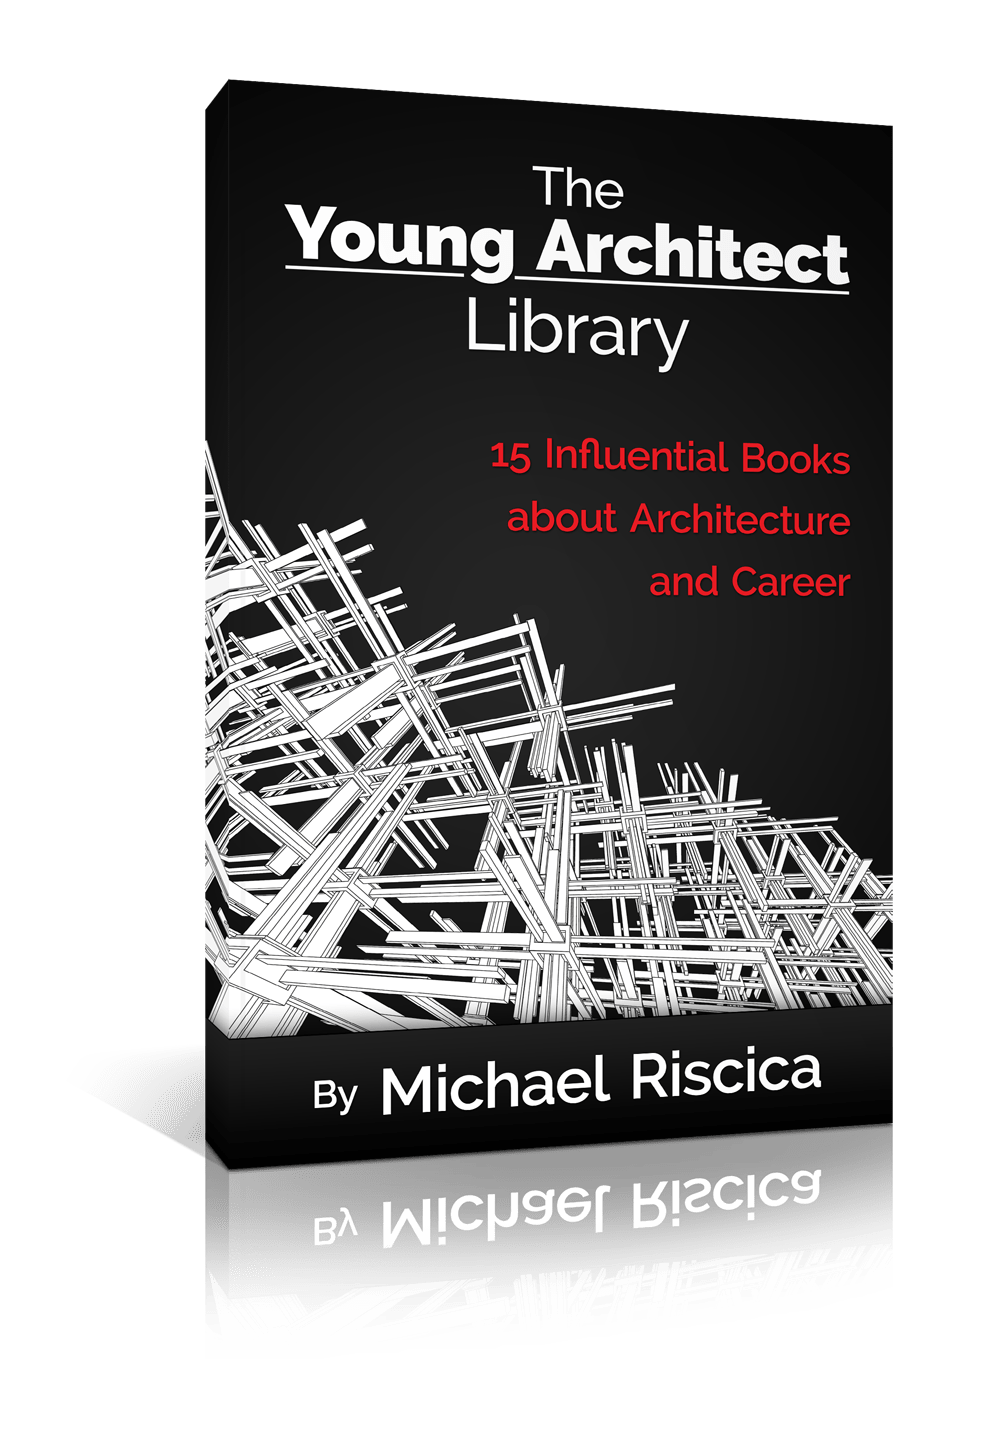 The Young Architect Library